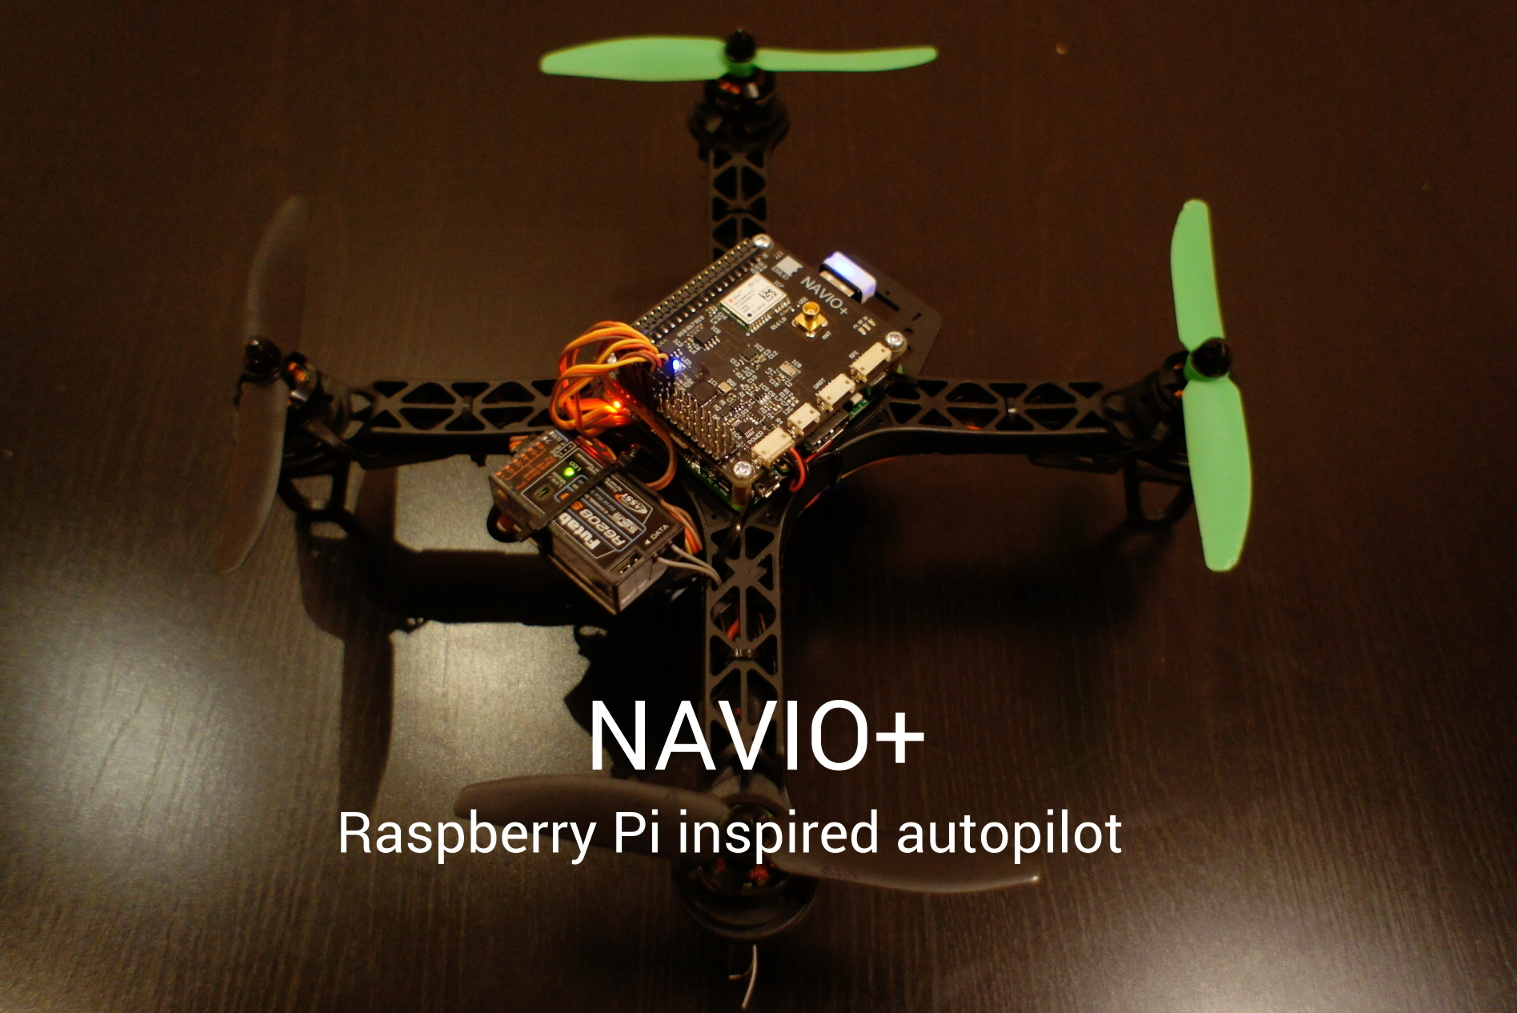 News Fpv Central Dji Phantom 2 Vision Circuit Board Rc Hobbies The Navio Is An Add On For Your Raspberry Pi With All Sensors And Equipment You Need Unmanned Missions Mpu9250 Imu Ms5611 Barometer